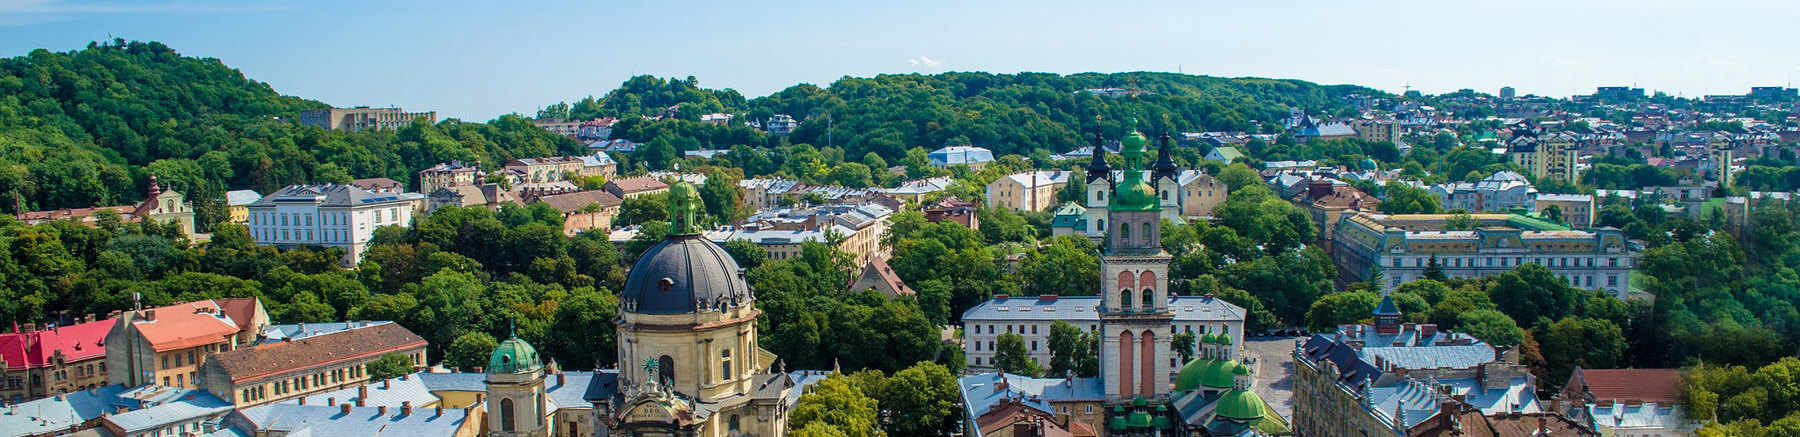 Panoramic view of the city of Lviv in Ukraine